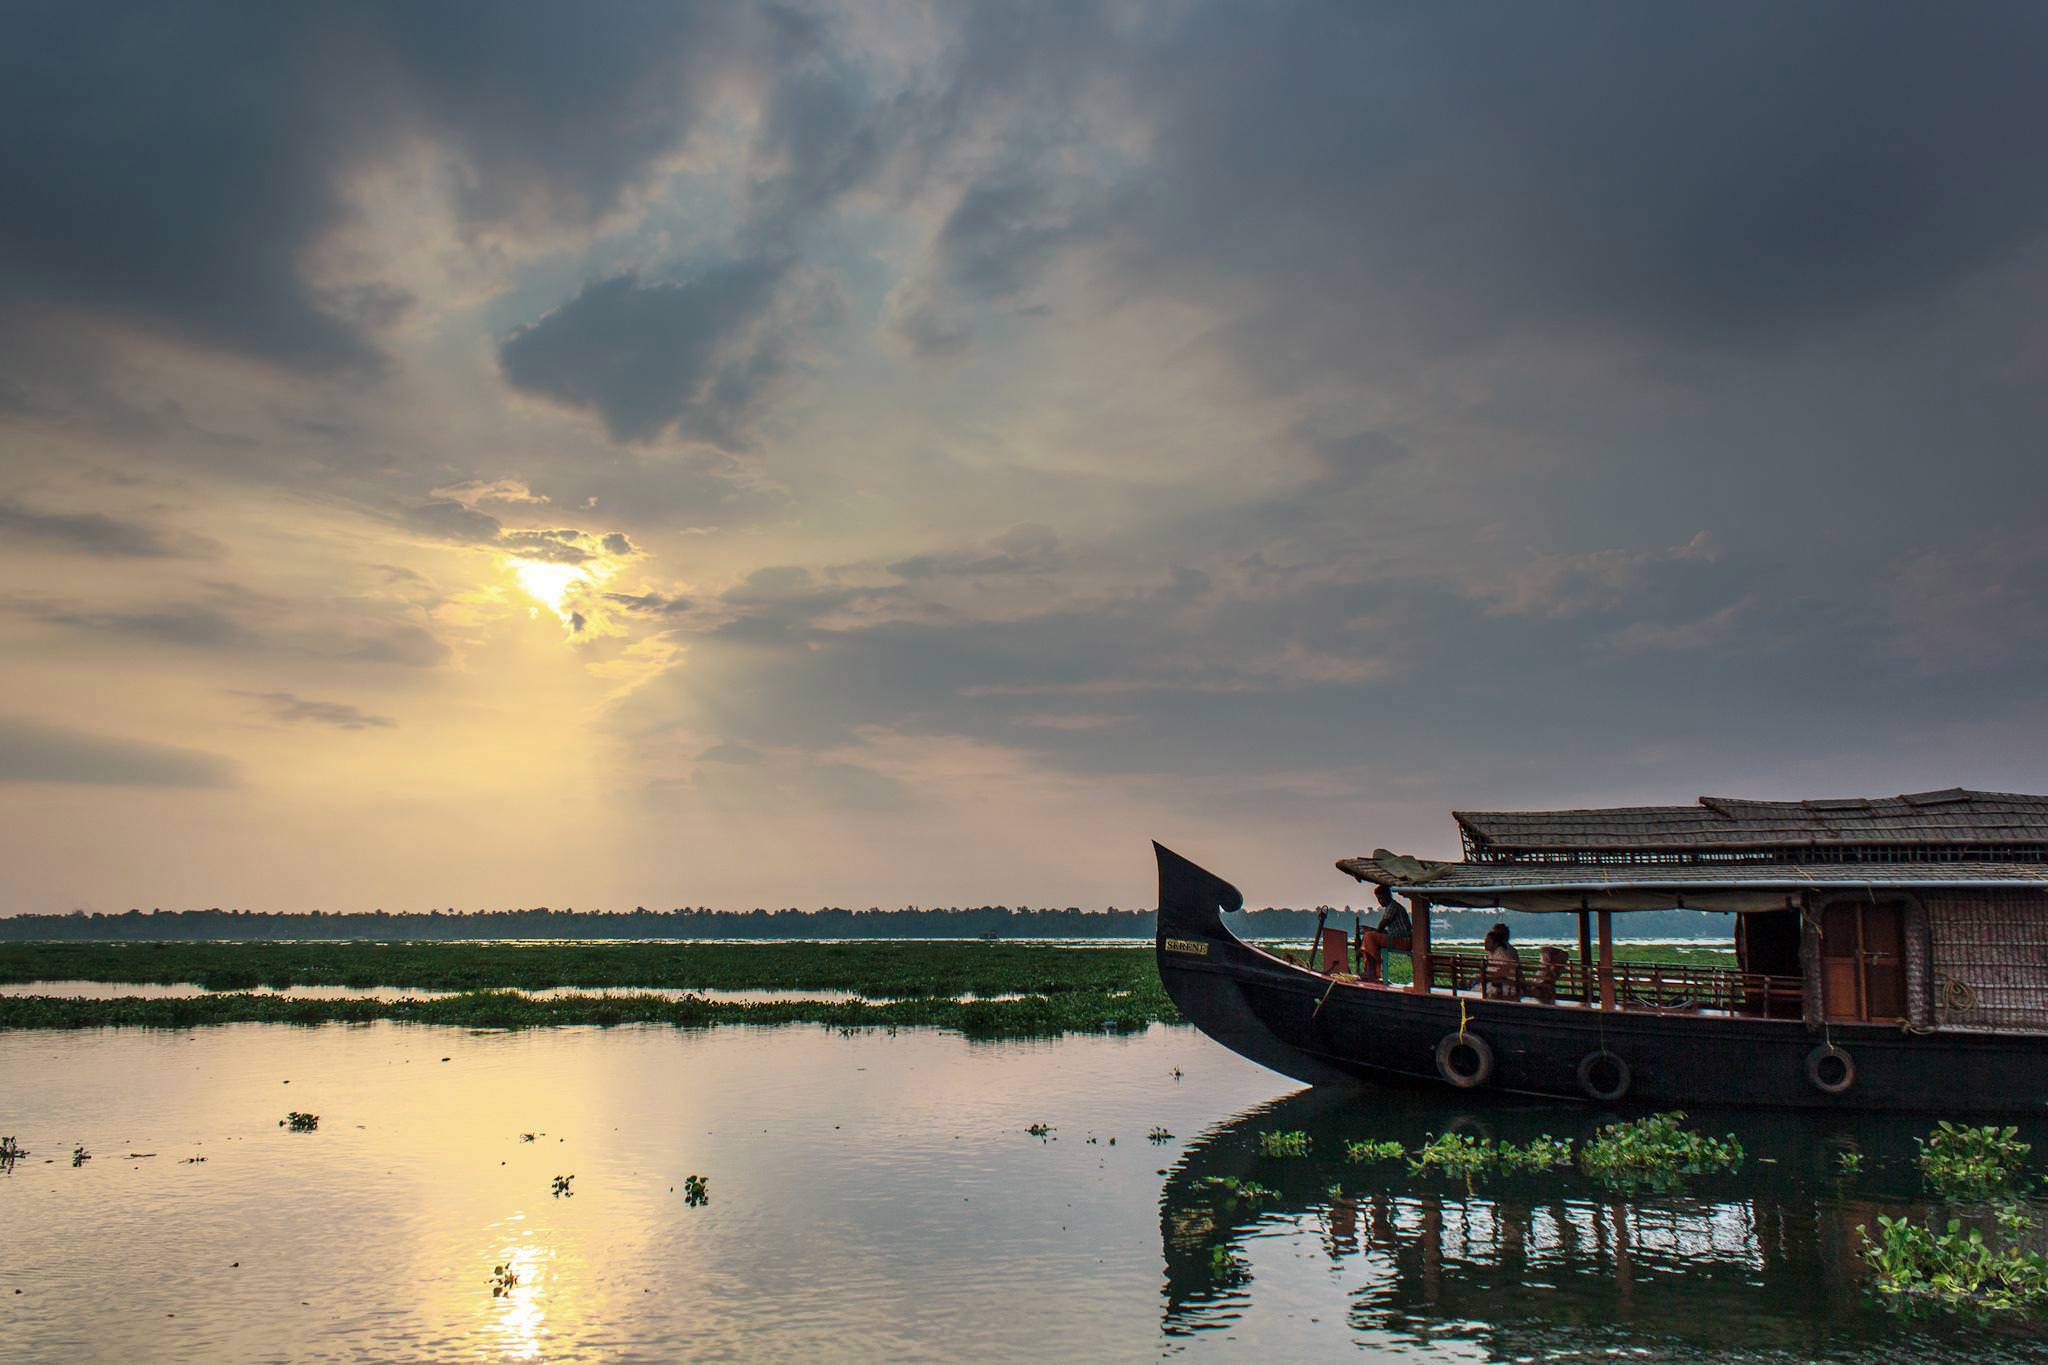 Beauty of Kerala backwaters